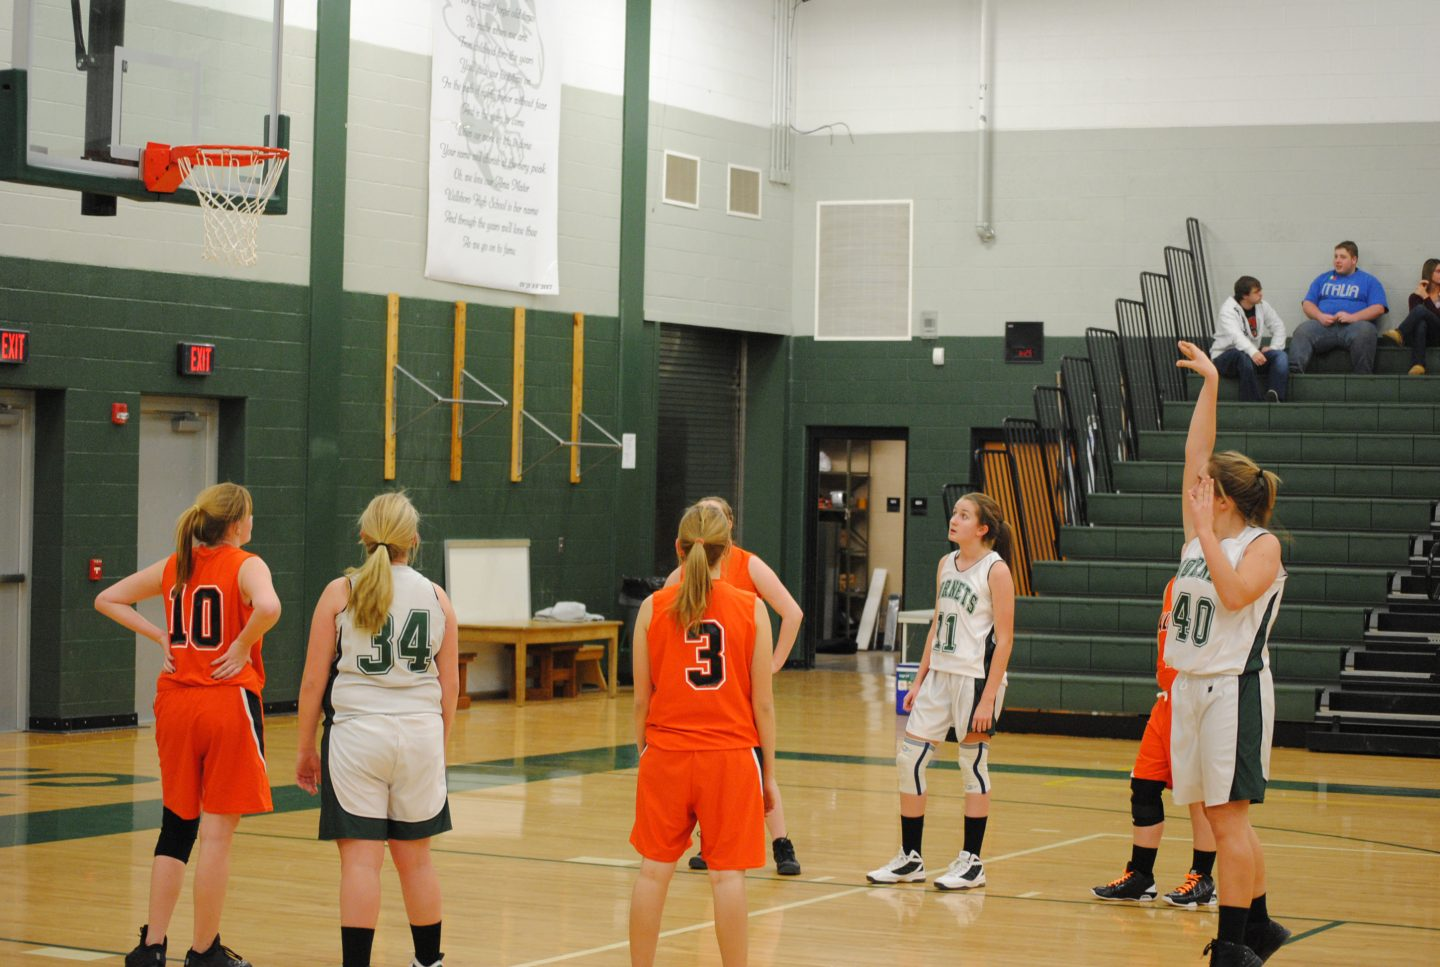 A female basketball team is playing and one girl is at the free throw line throwing the ball to the basket, team sport, winning, motivation